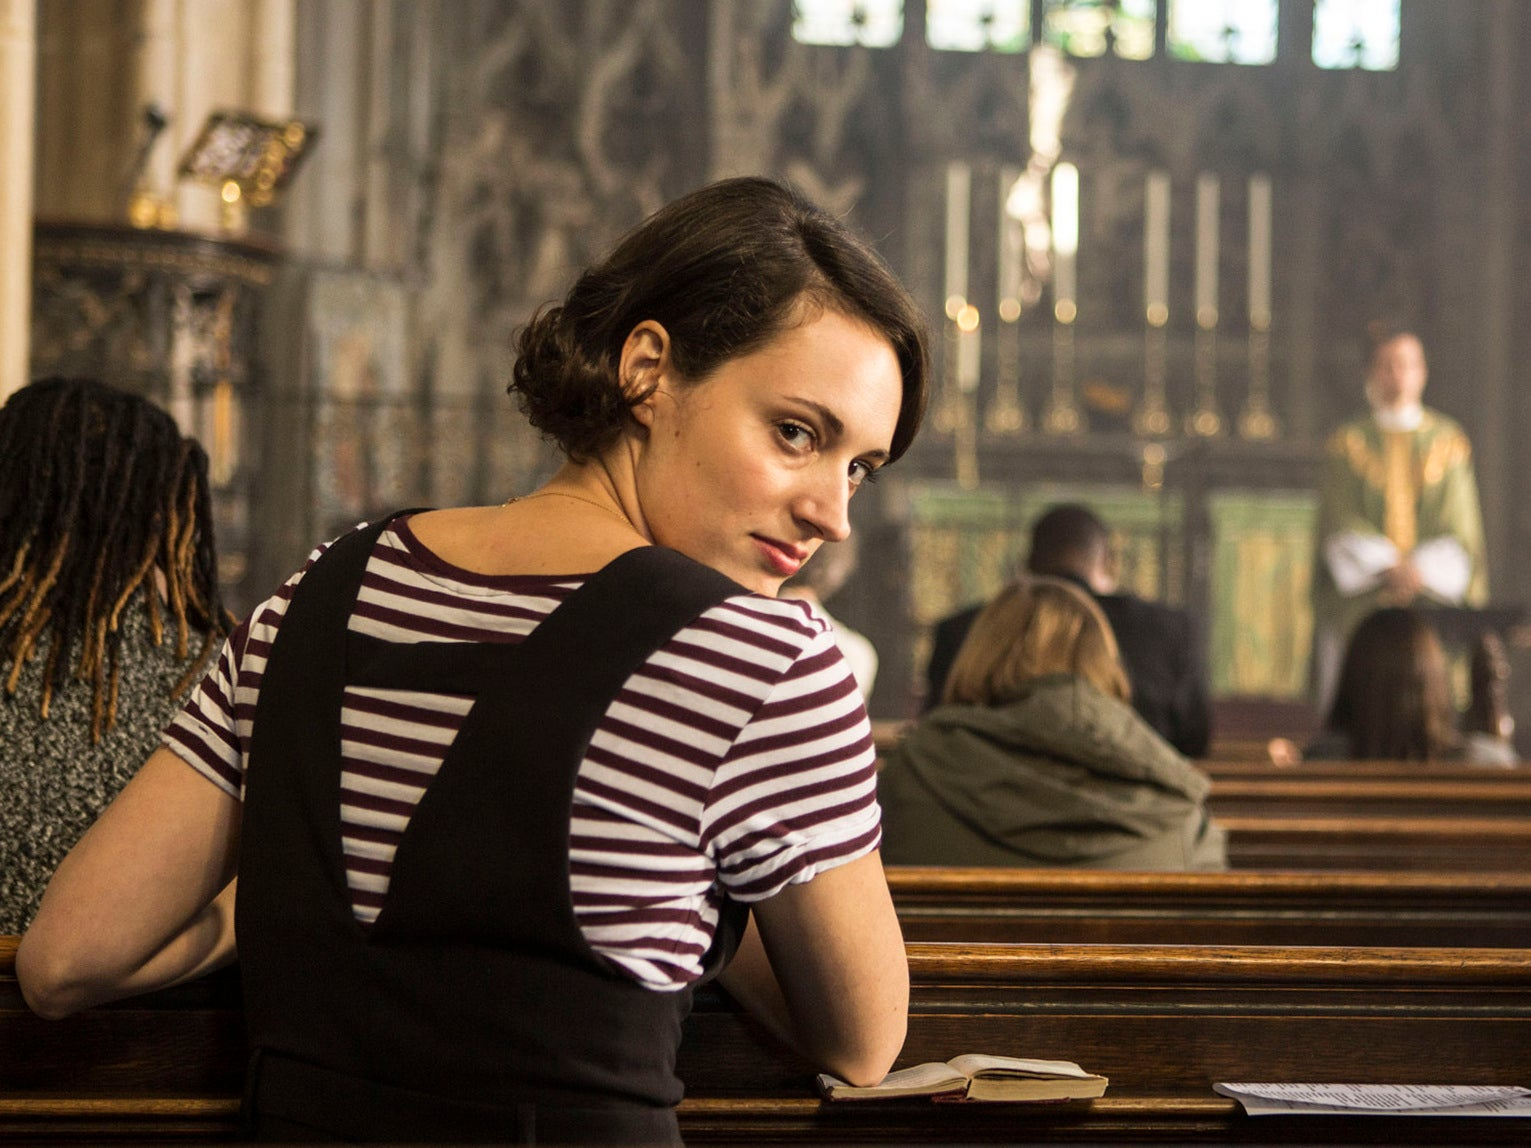 Fleabag's Phoebe Waller-Bridge hired to help 'polish' James Bond 25 script